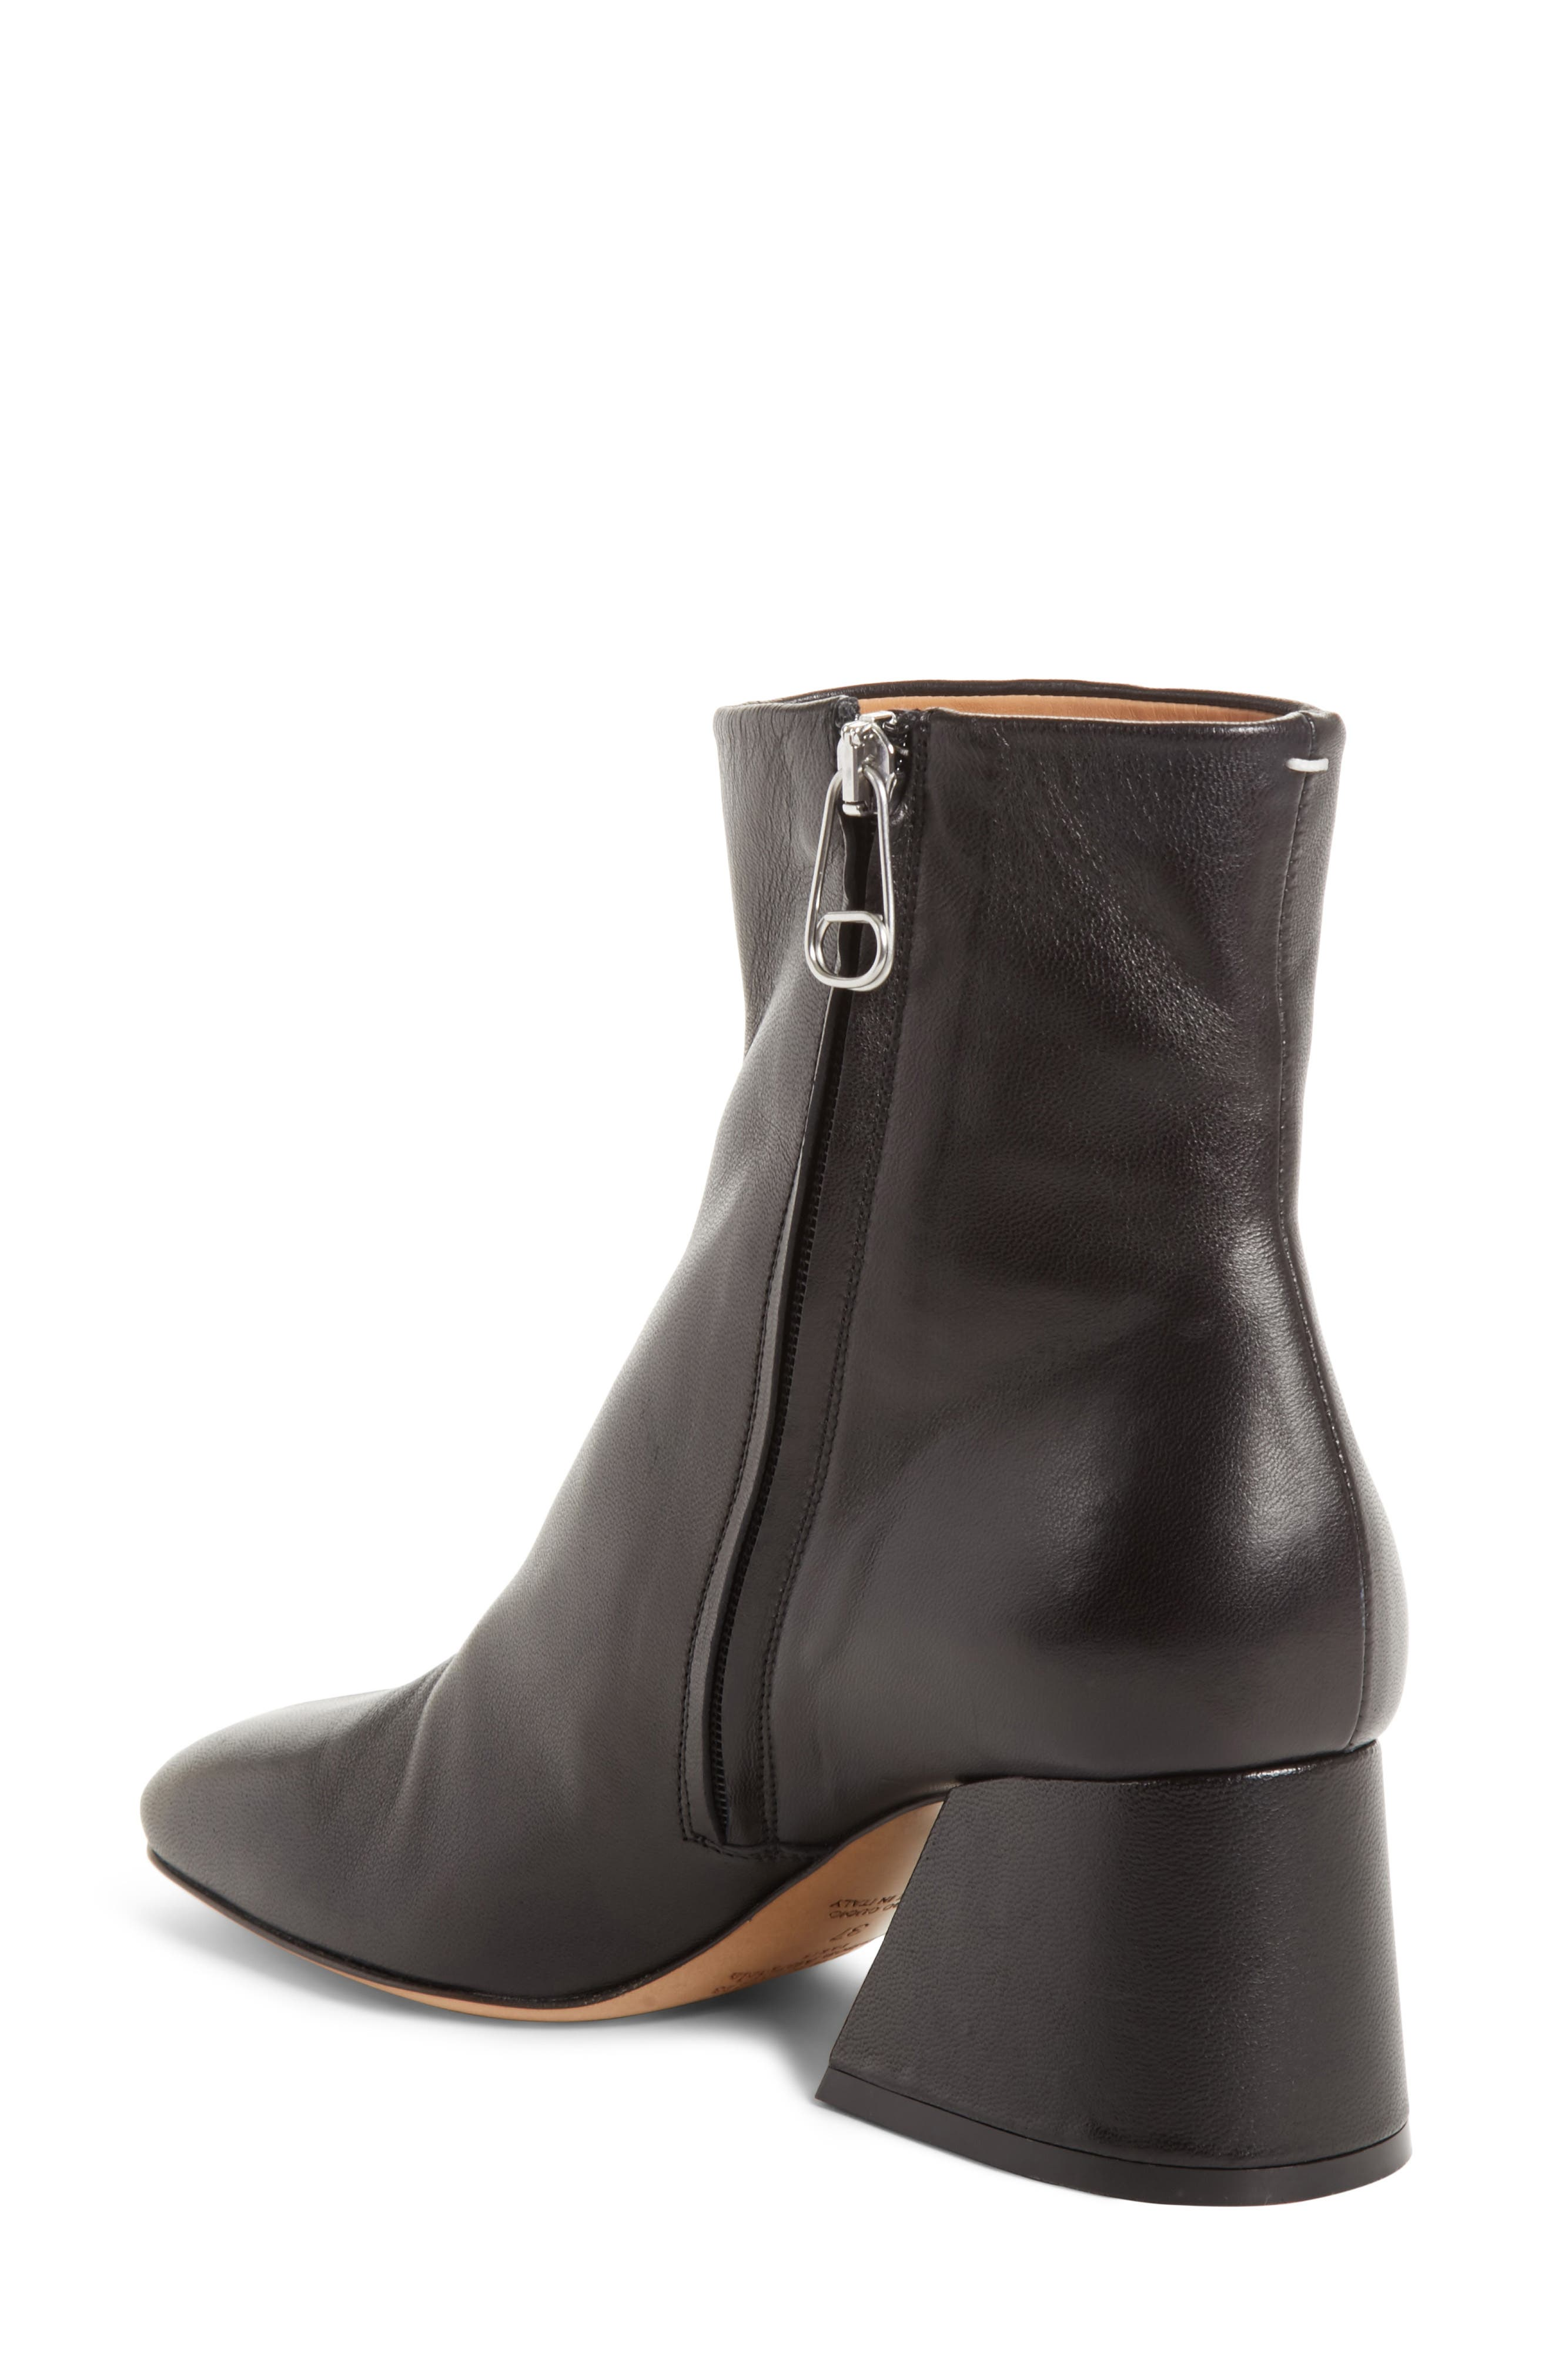 Flare Heel Ankle Boot,                             Alternate thumbnail 2, color,